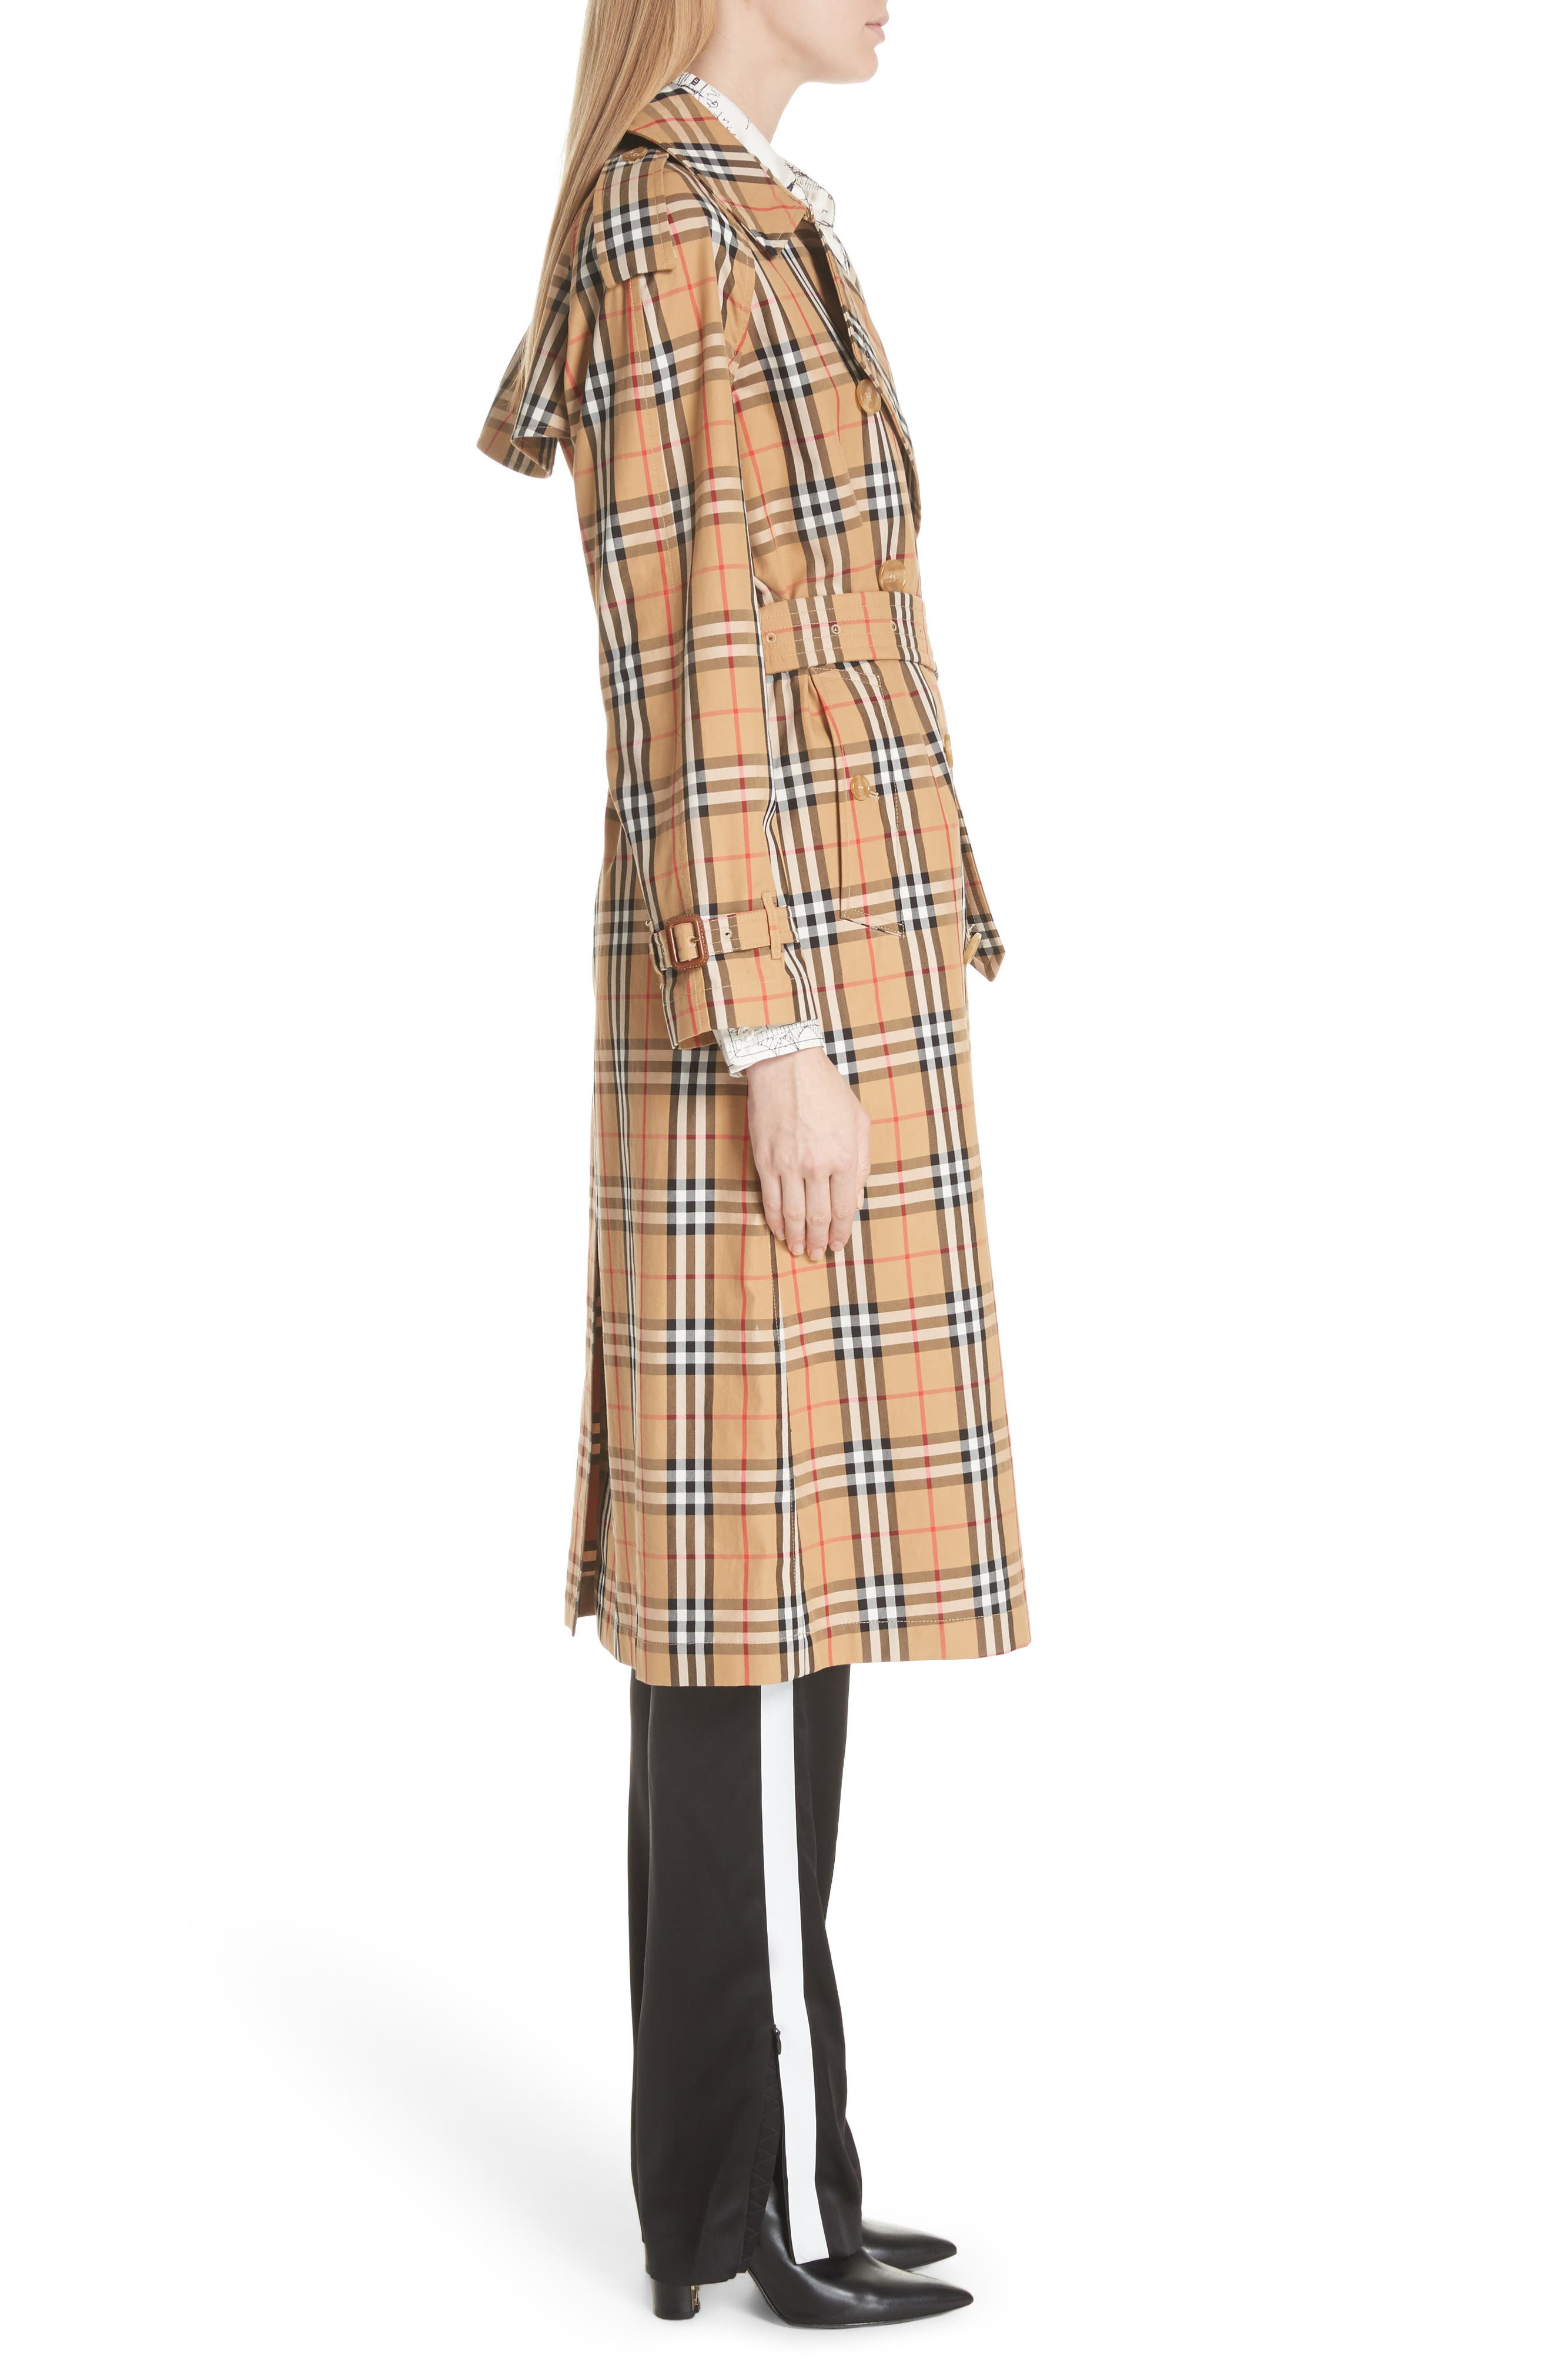 BURBERRY, Eastheath Vintage Check Trench Coat, Alternate thumbnail 4, color, ANTIQUE YELLOW